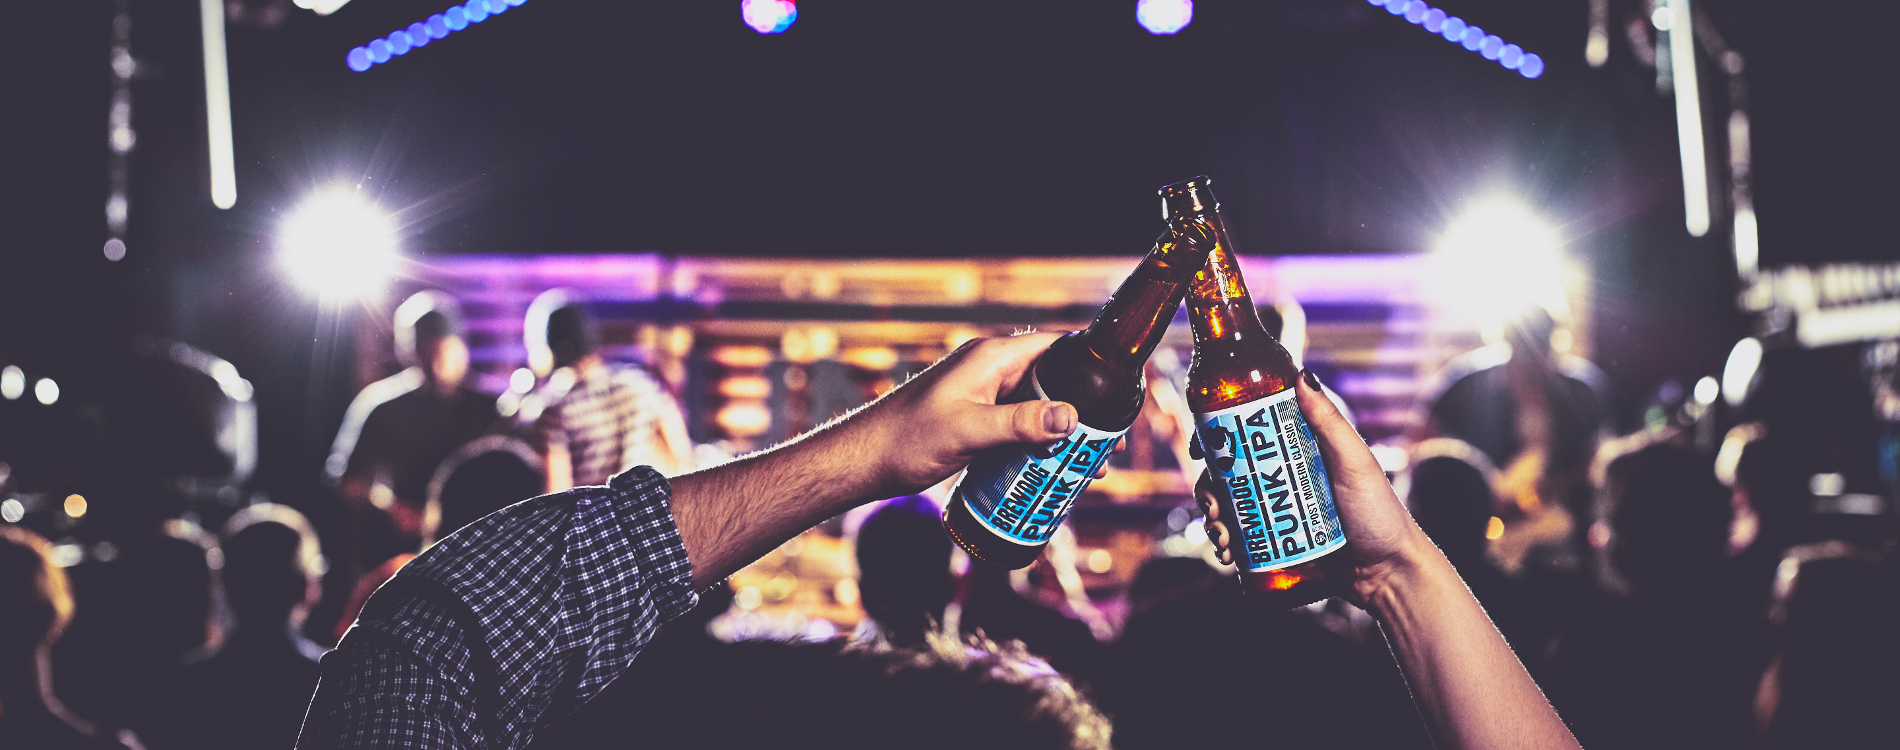 EQUITY FOR PUNKS IS HERE